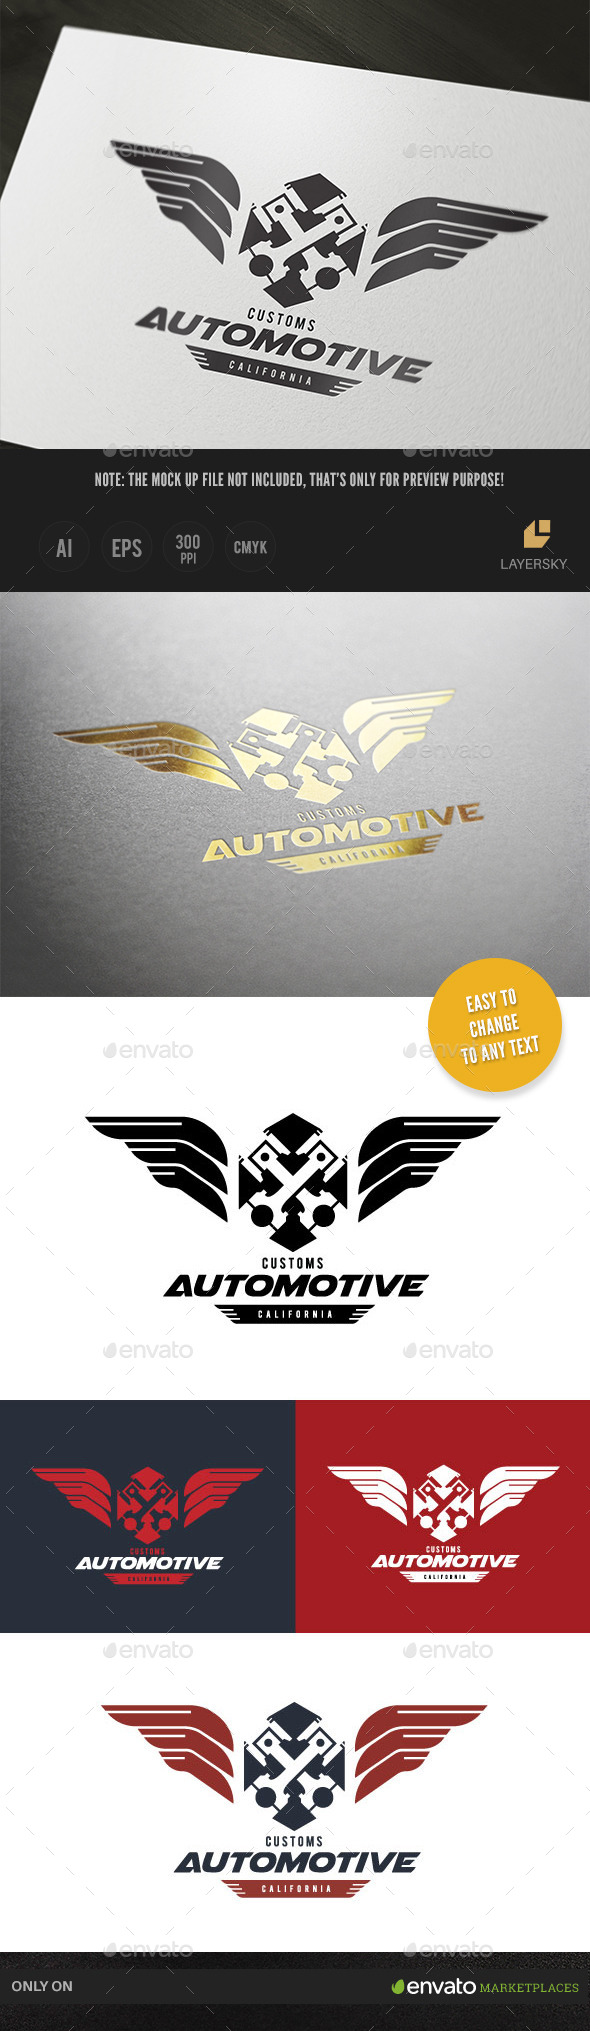 GraphicRiver Custom Automotive 10511382